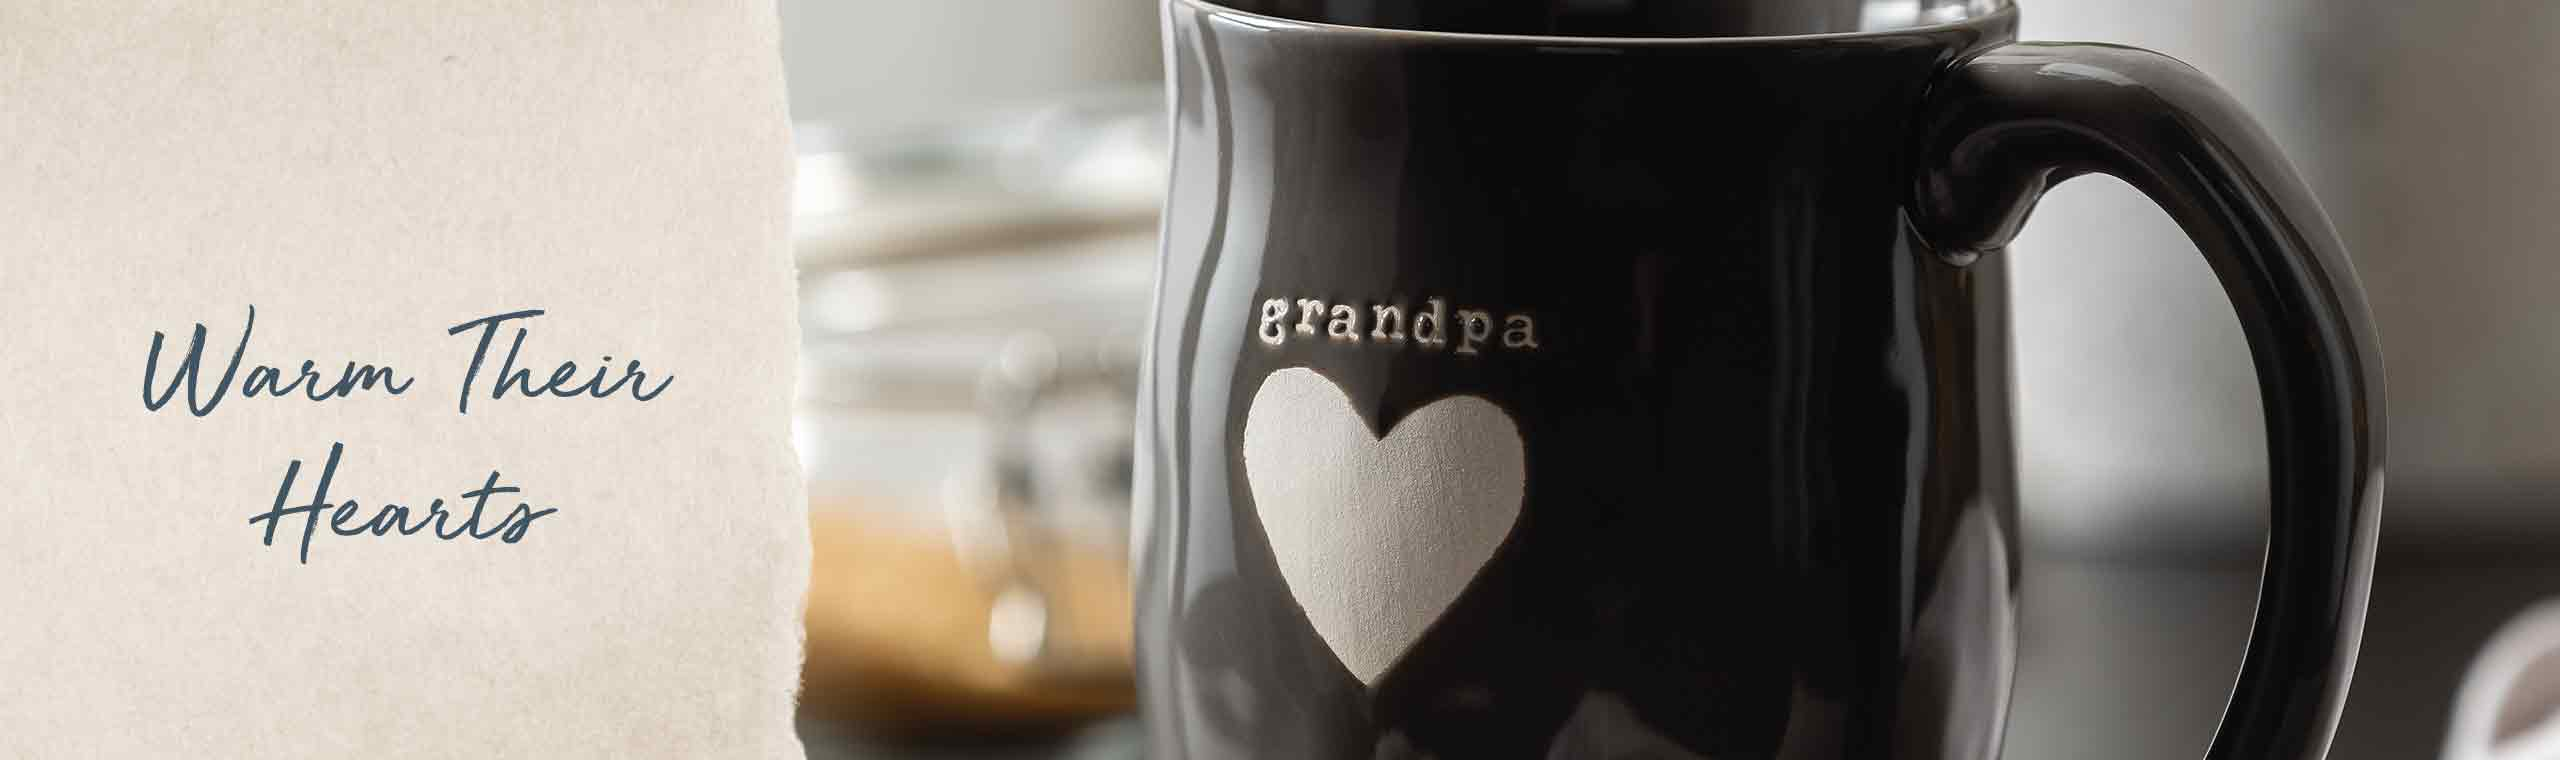 Warm their hearts. black mug with grandpa in a script font printed with a heart